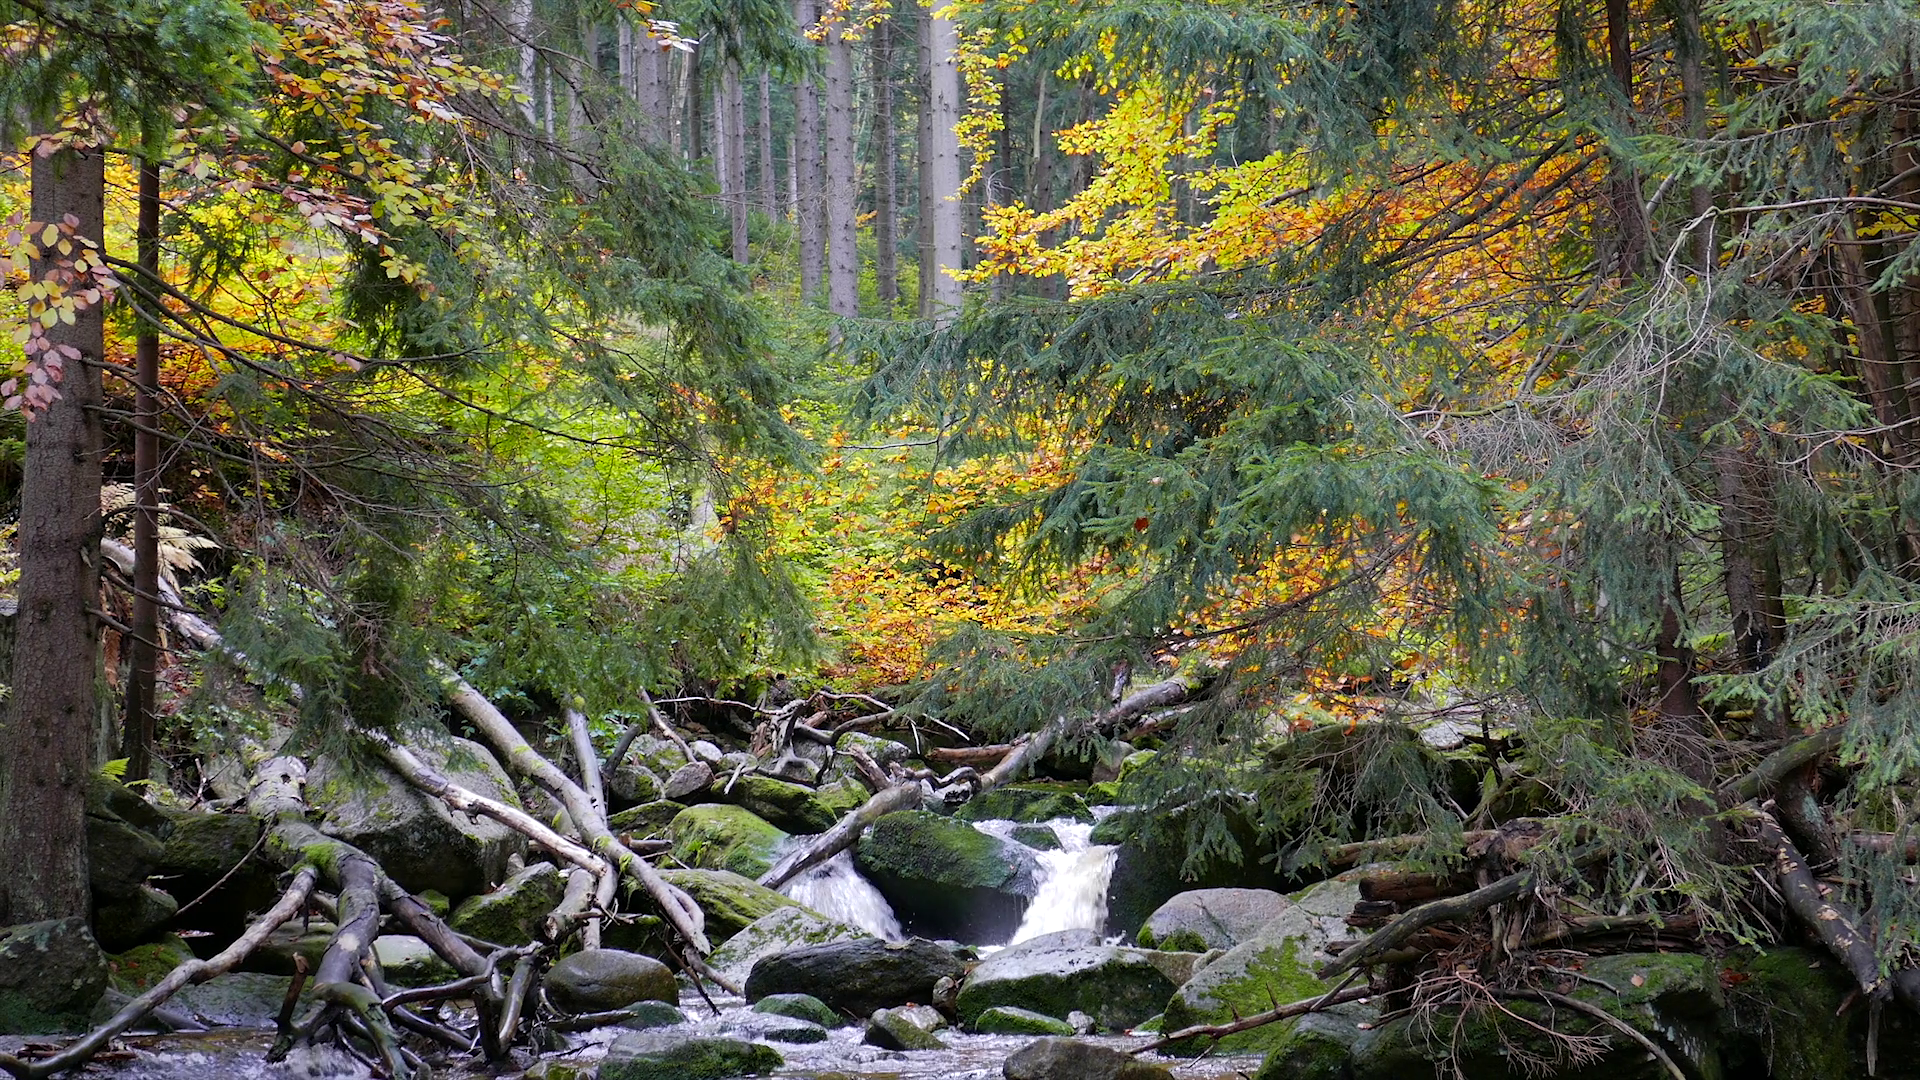 Stream of water in the wild forest at fall. Karkonosze National Park ...